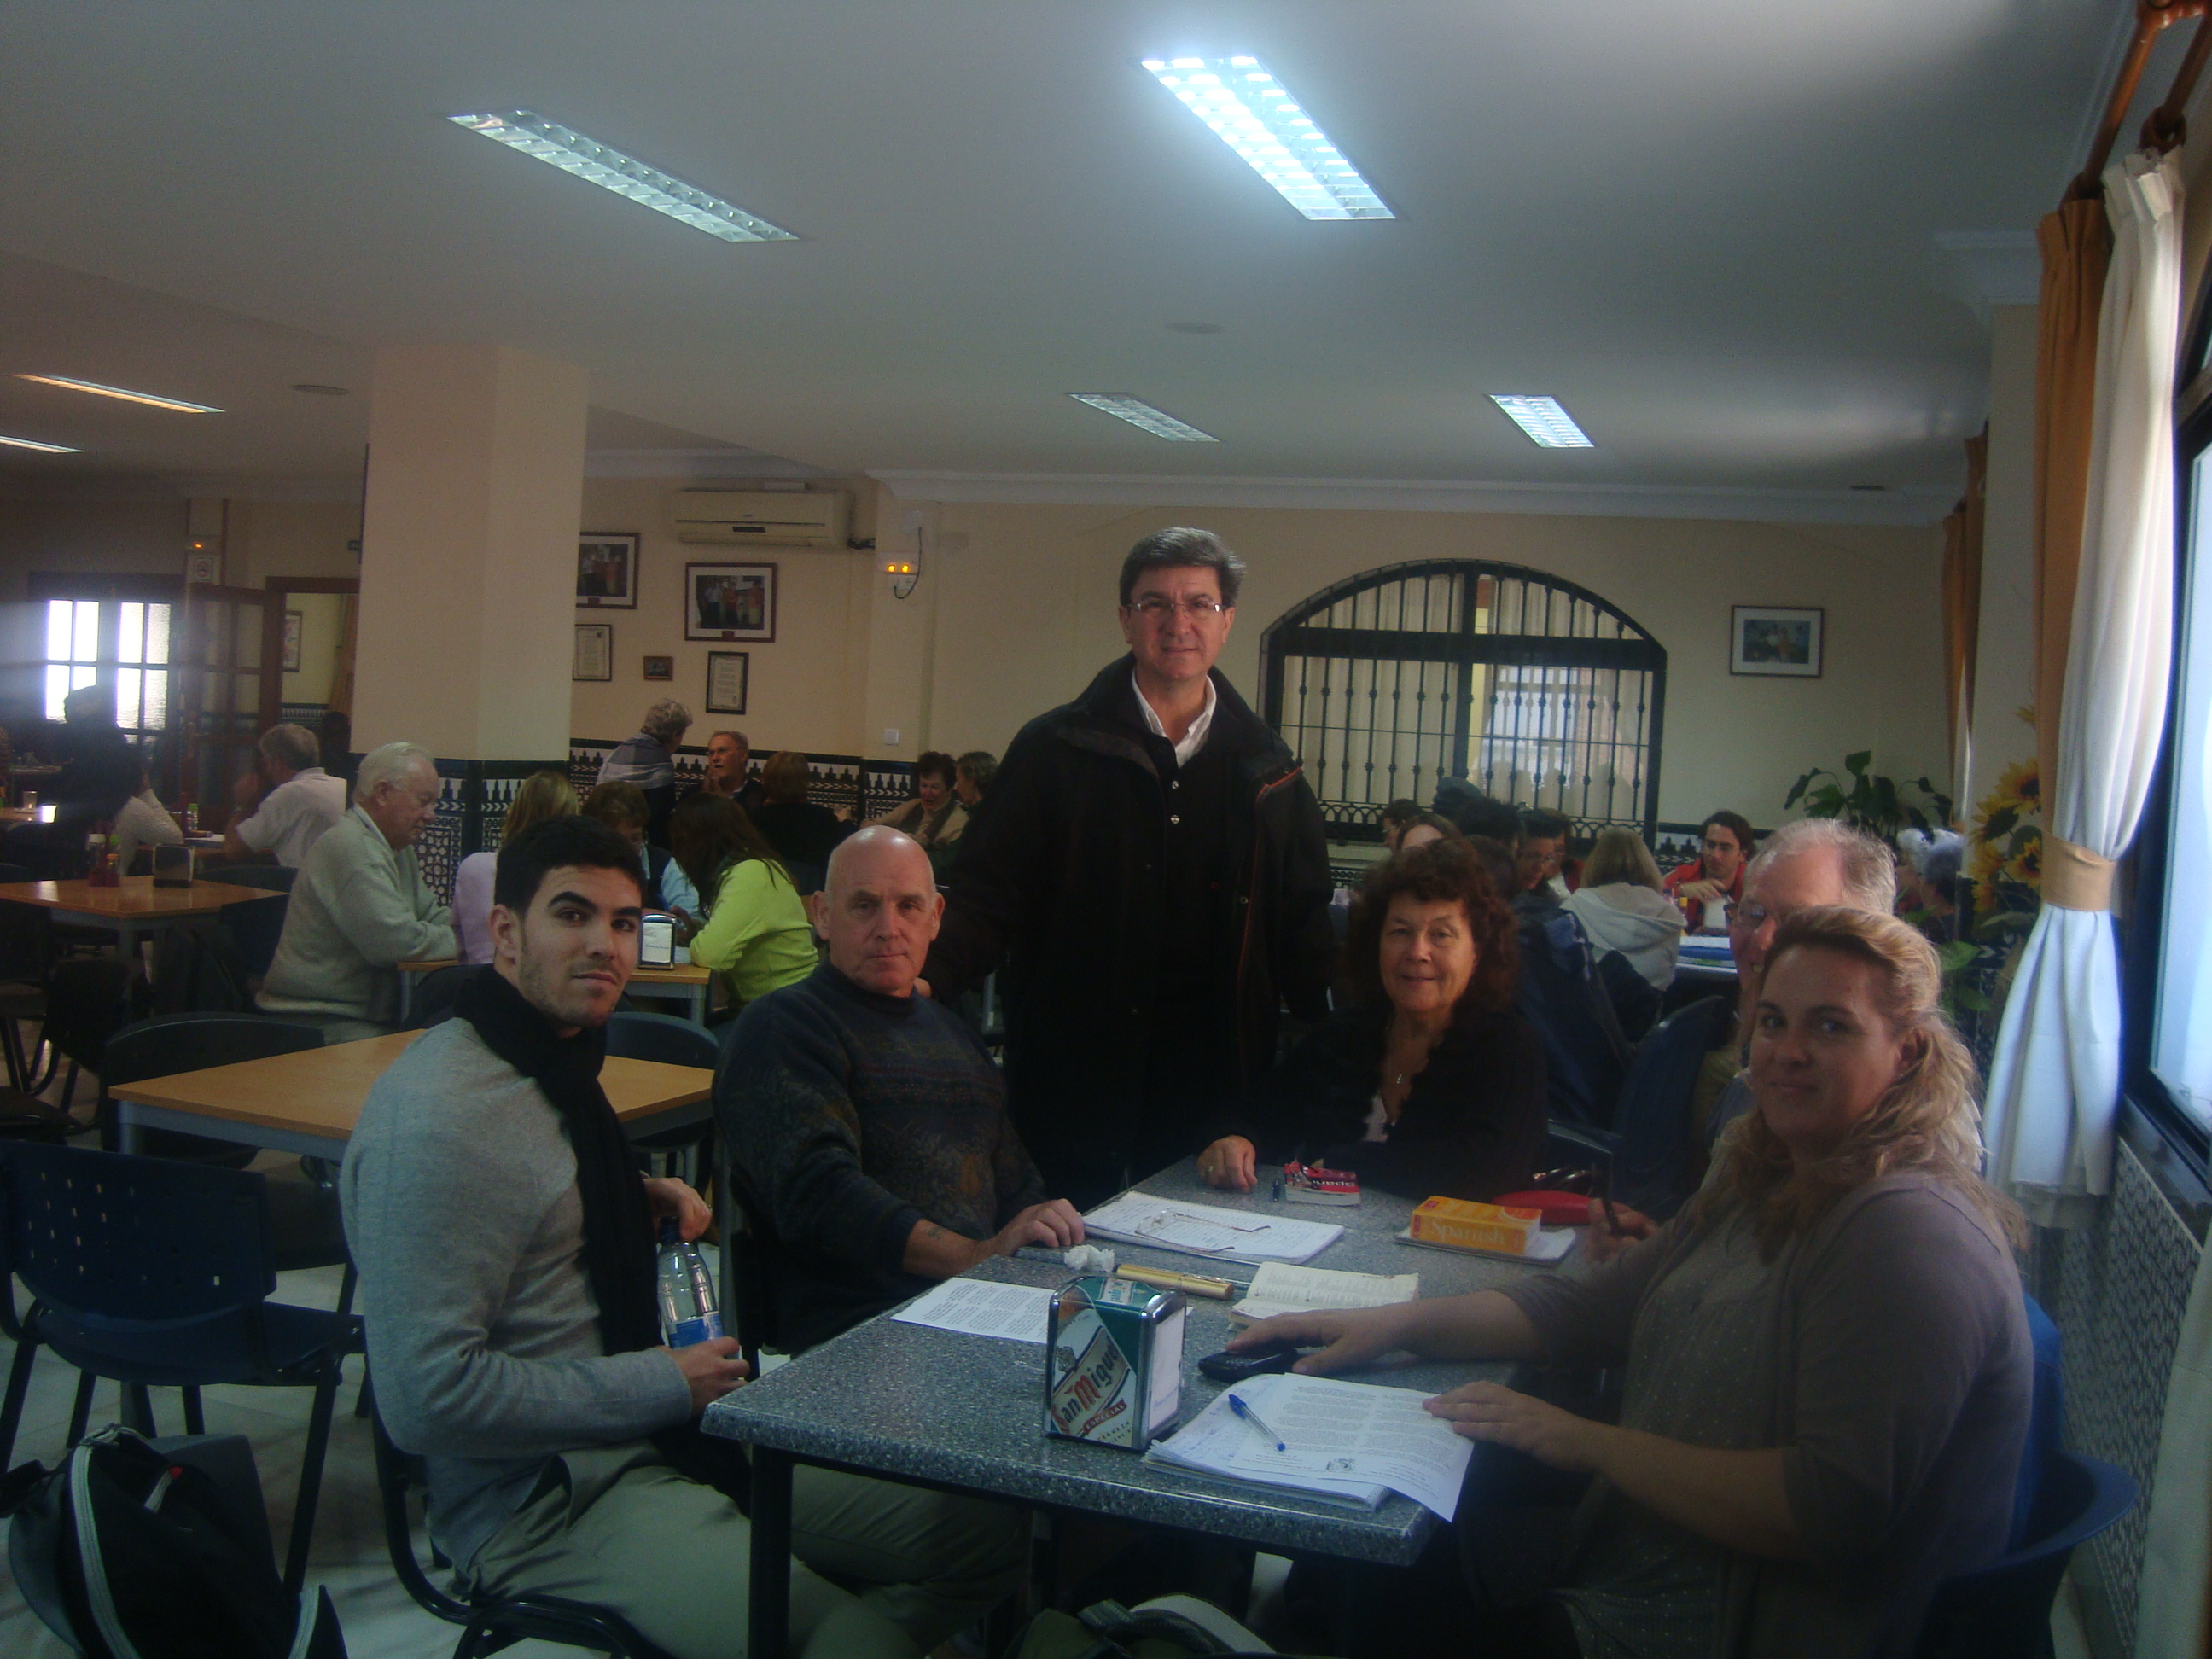 The Councilar for Foreign Residents visits language workshop in Arroyo de la Miel